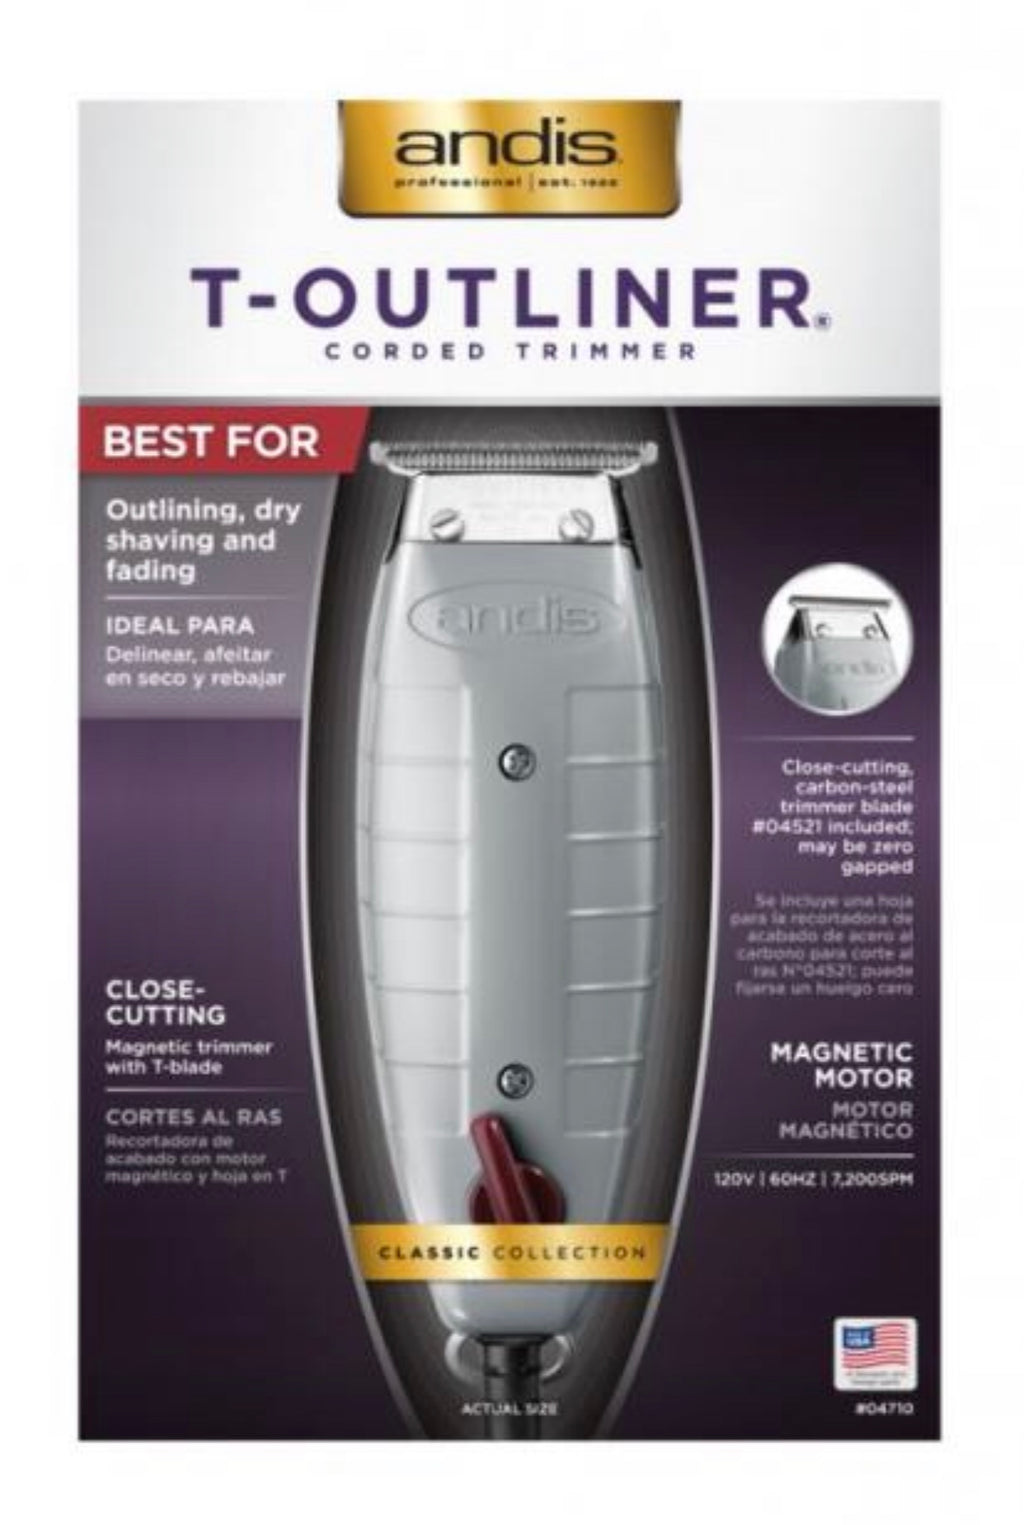 Andis T-Outliner